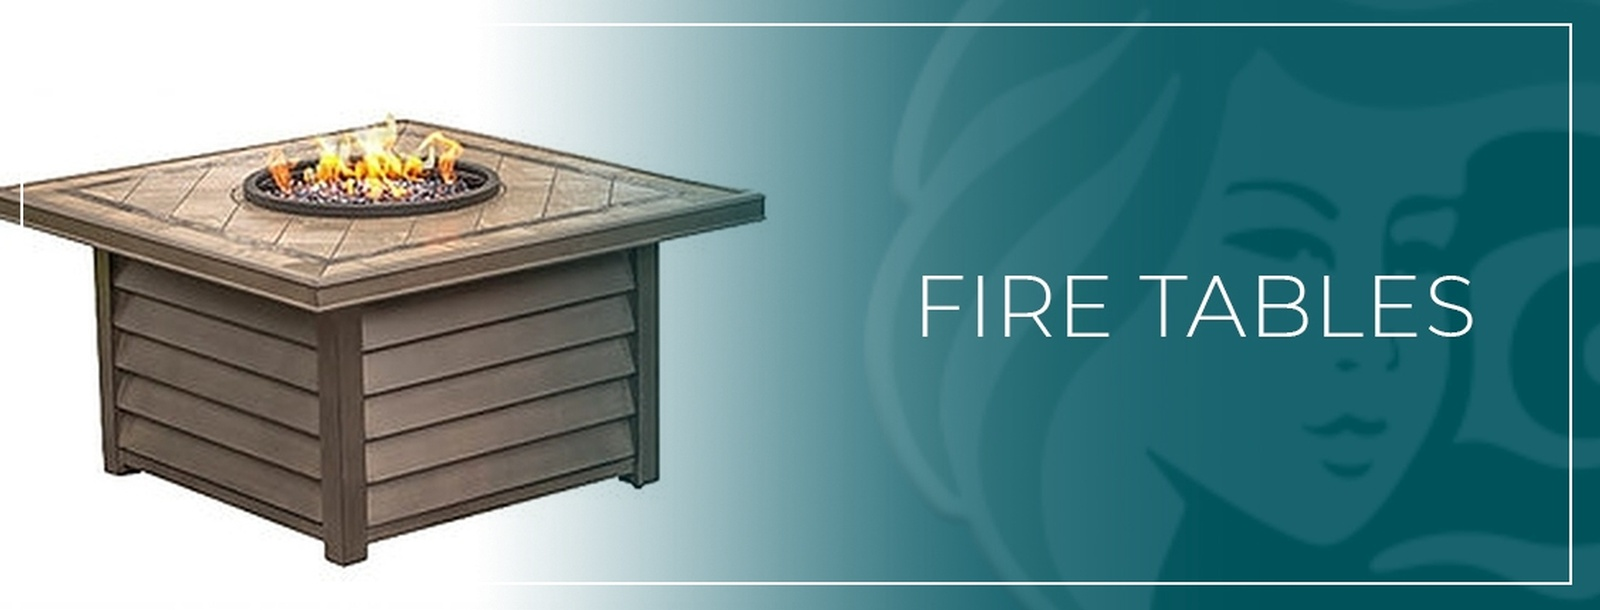 Buy Fire Tables Online at Beachcomber Lloydminster